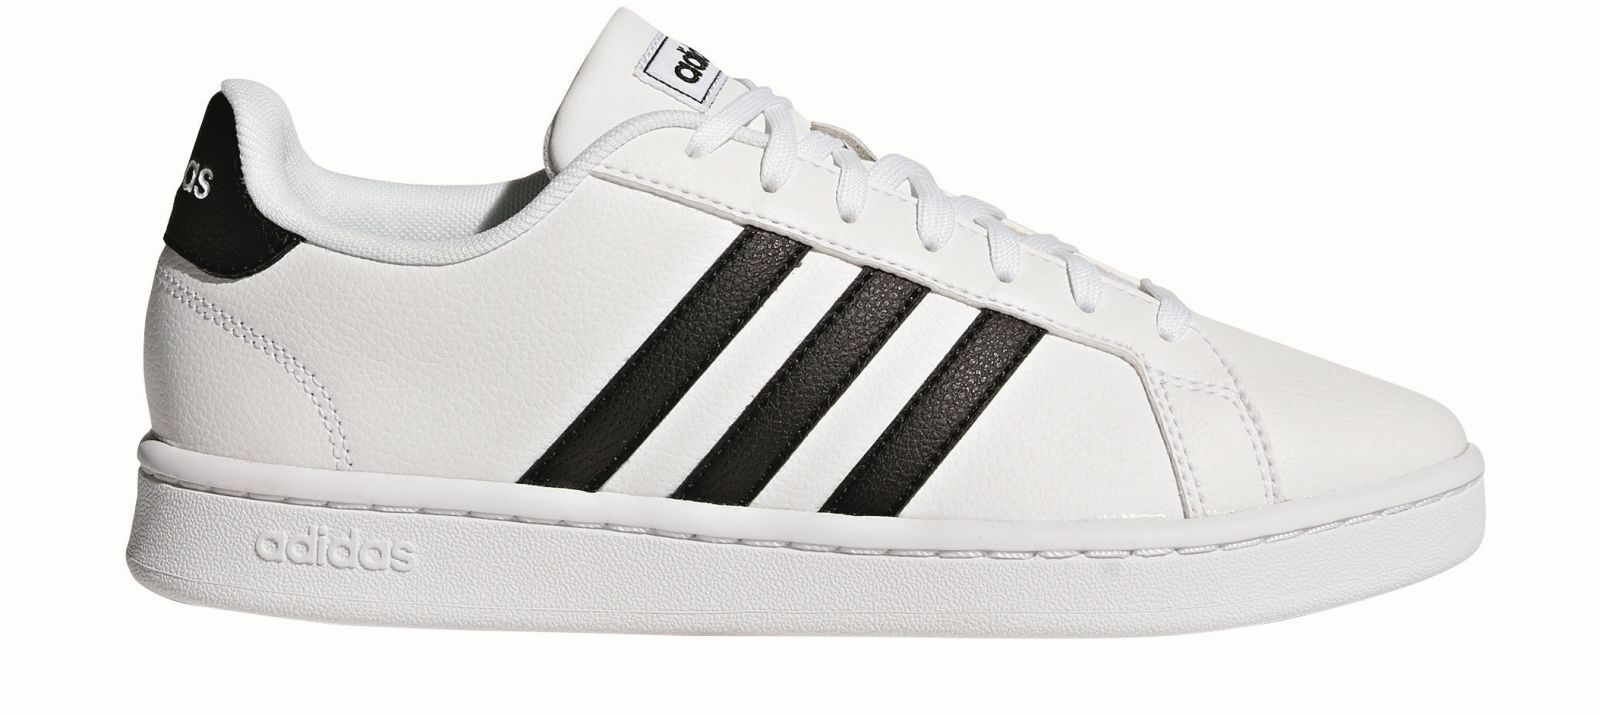 Adidas Core Women's Casual Fitness shoes Trainers Grand Grand Grand Court 2.0 white c9ea39